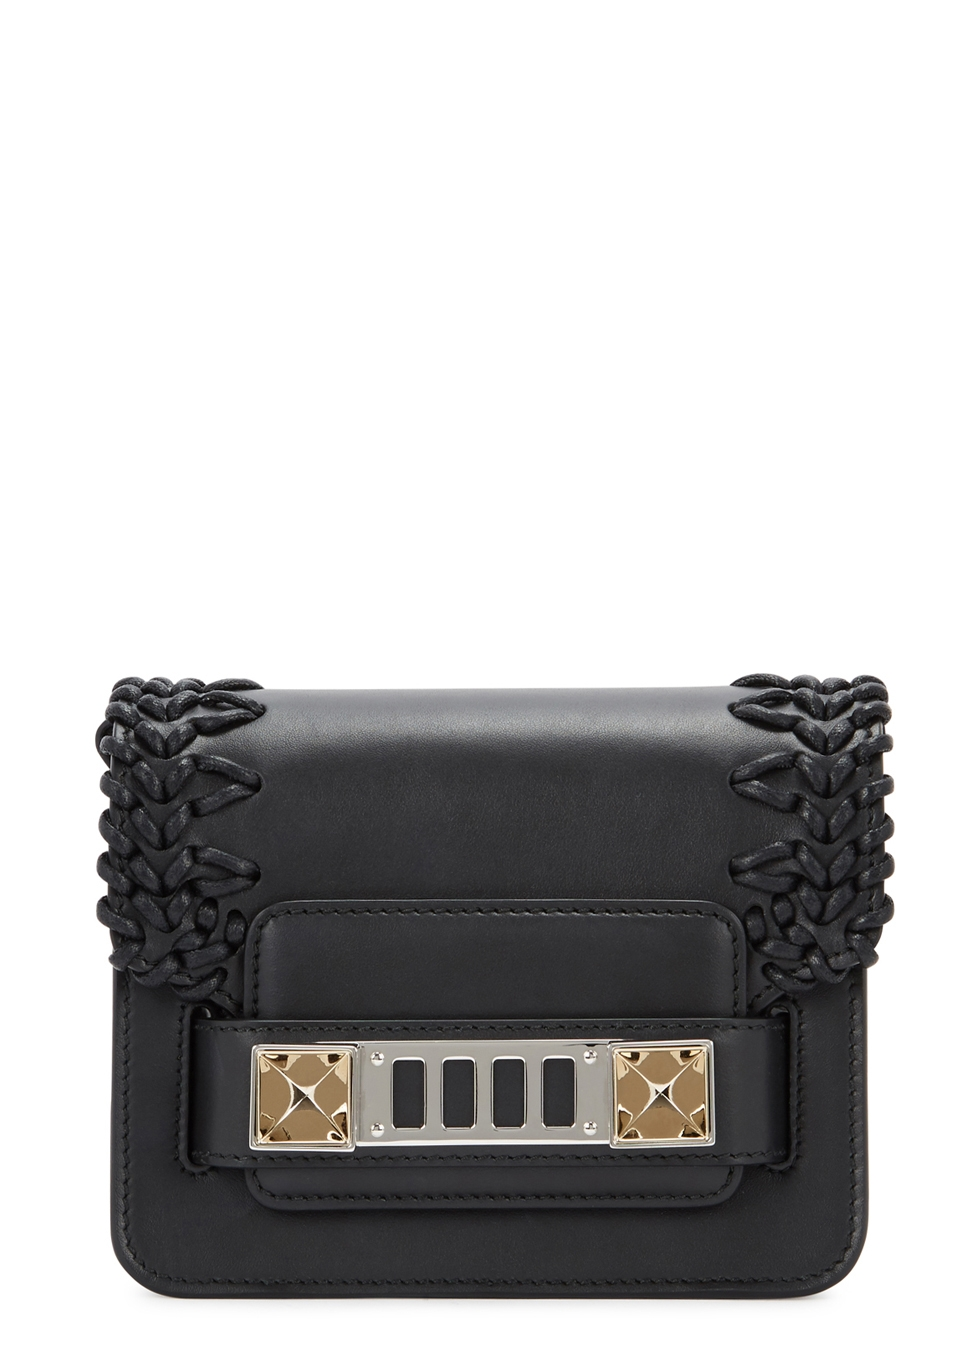 PS11 BLACK LEATHER CROSS-BODY BAG